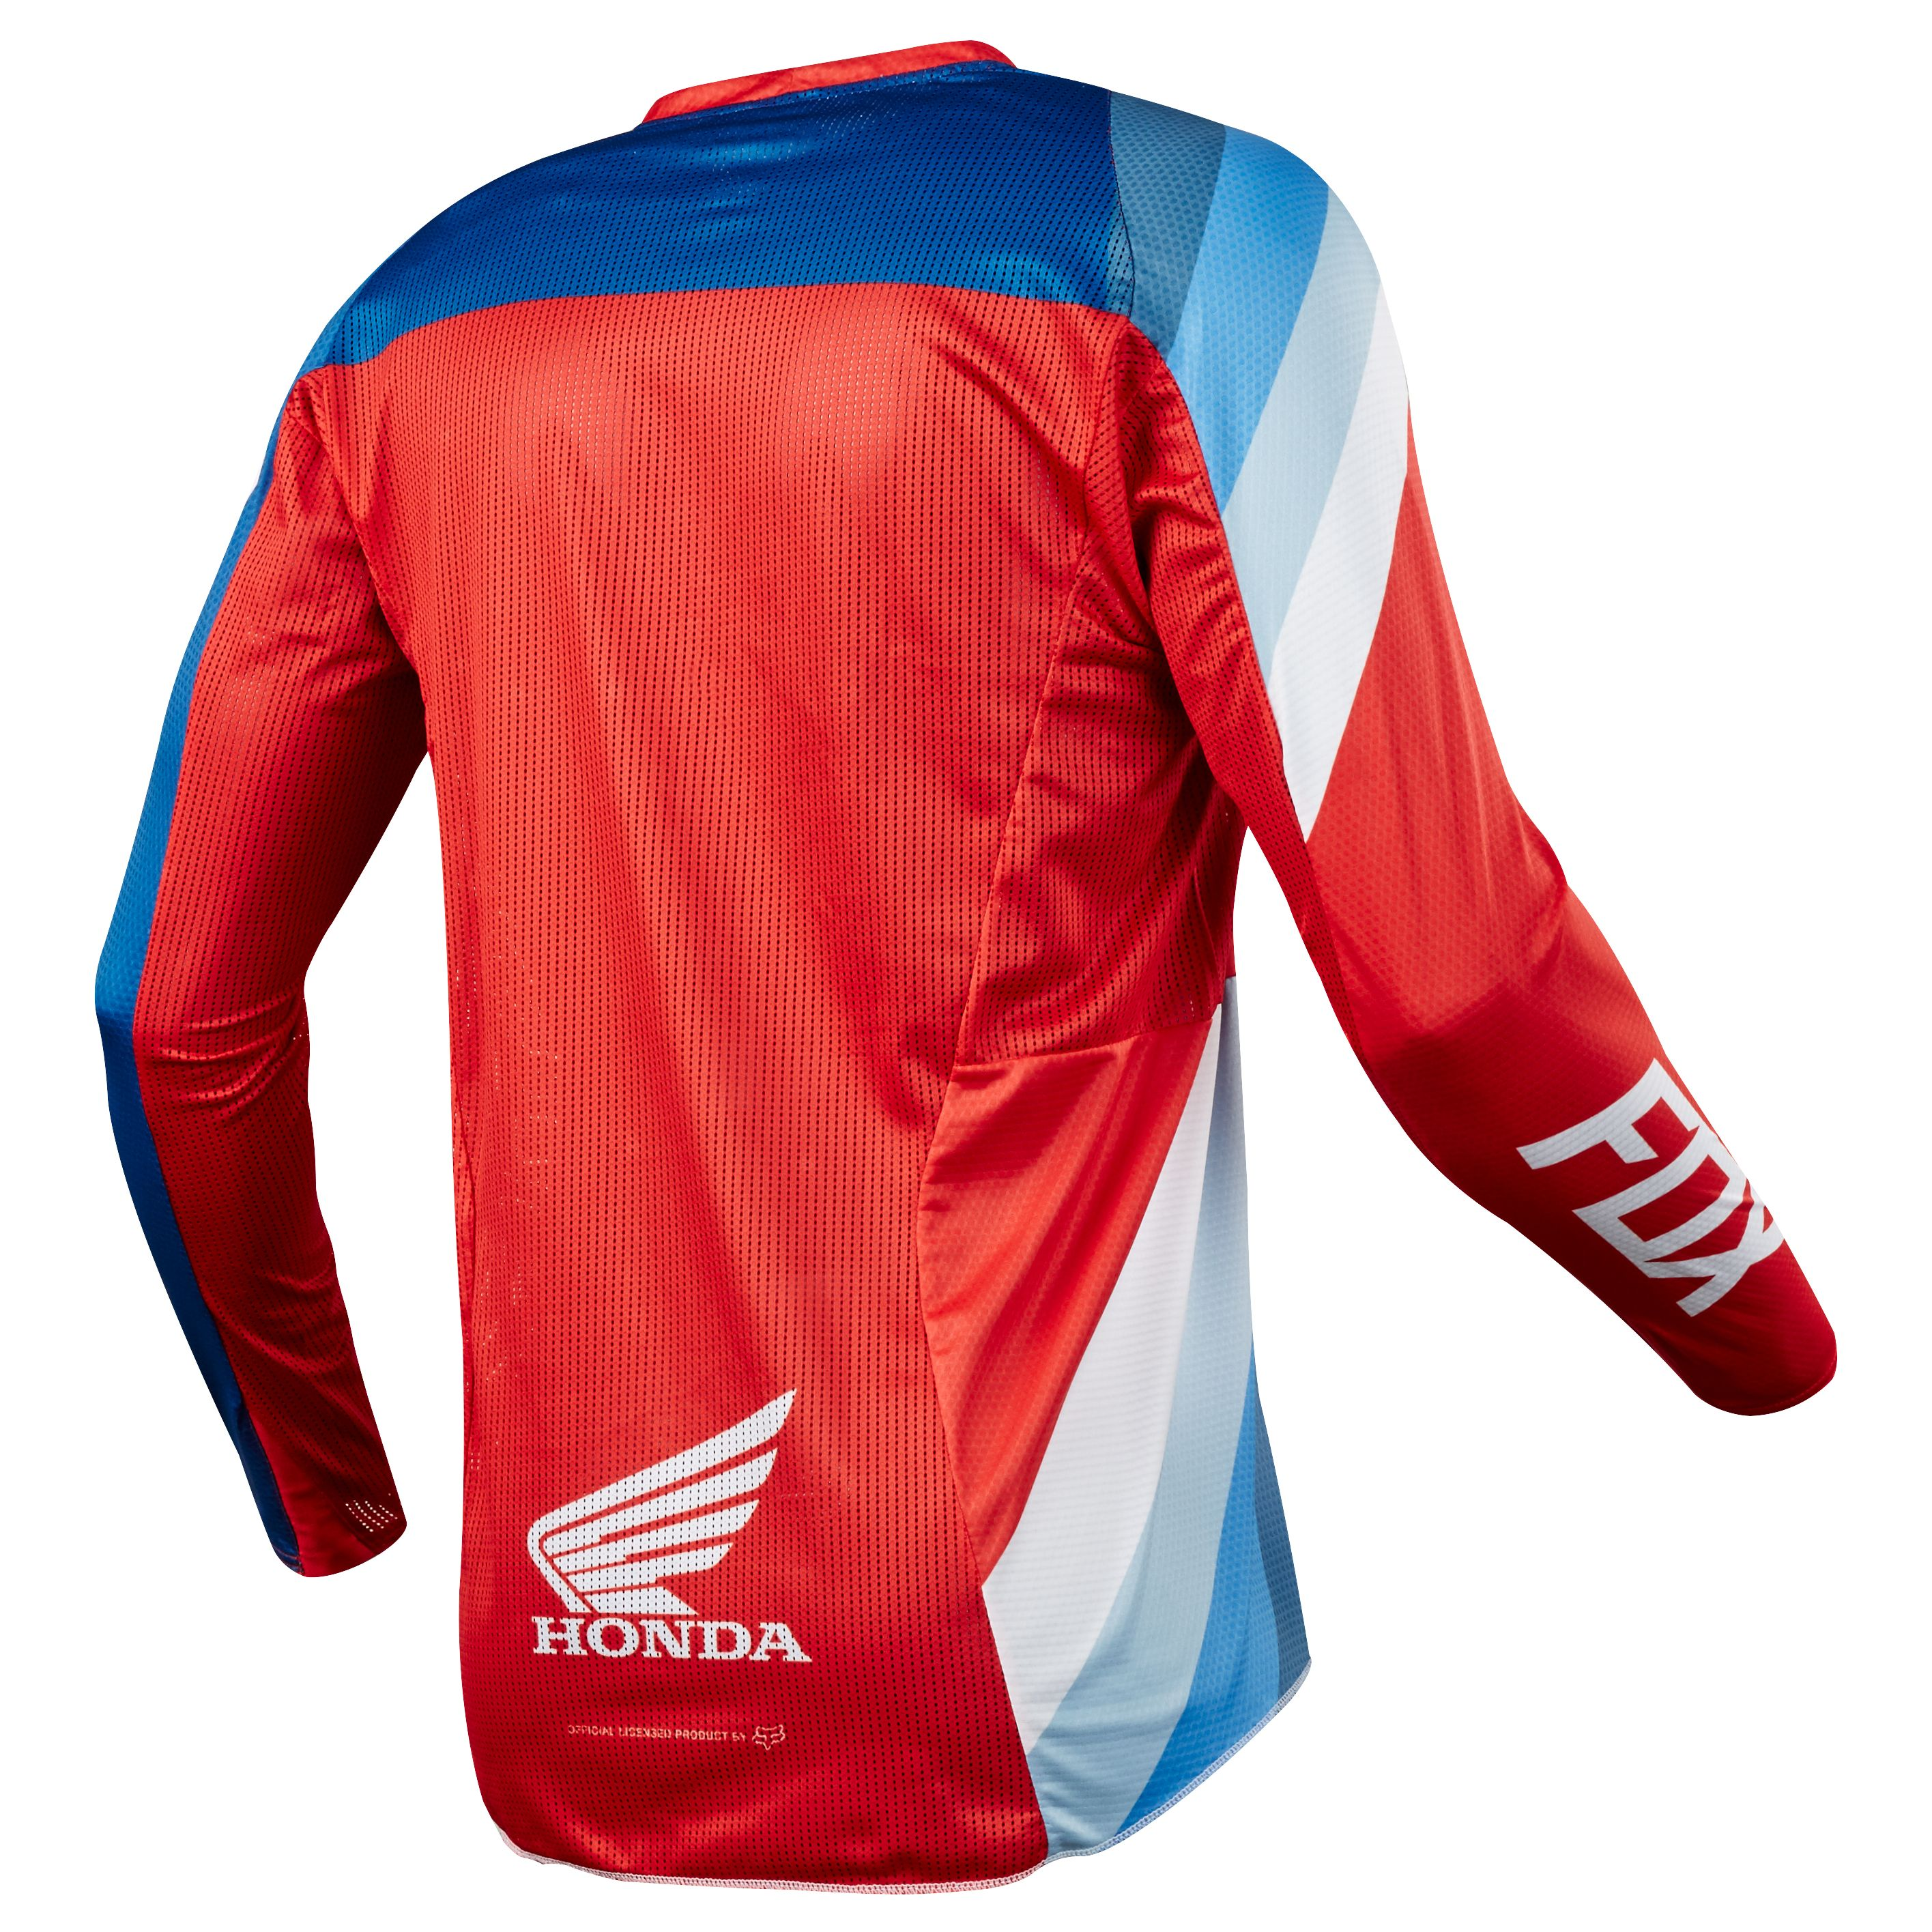 Maillot cross Fox 360 HONDA - ROUGE -  2018